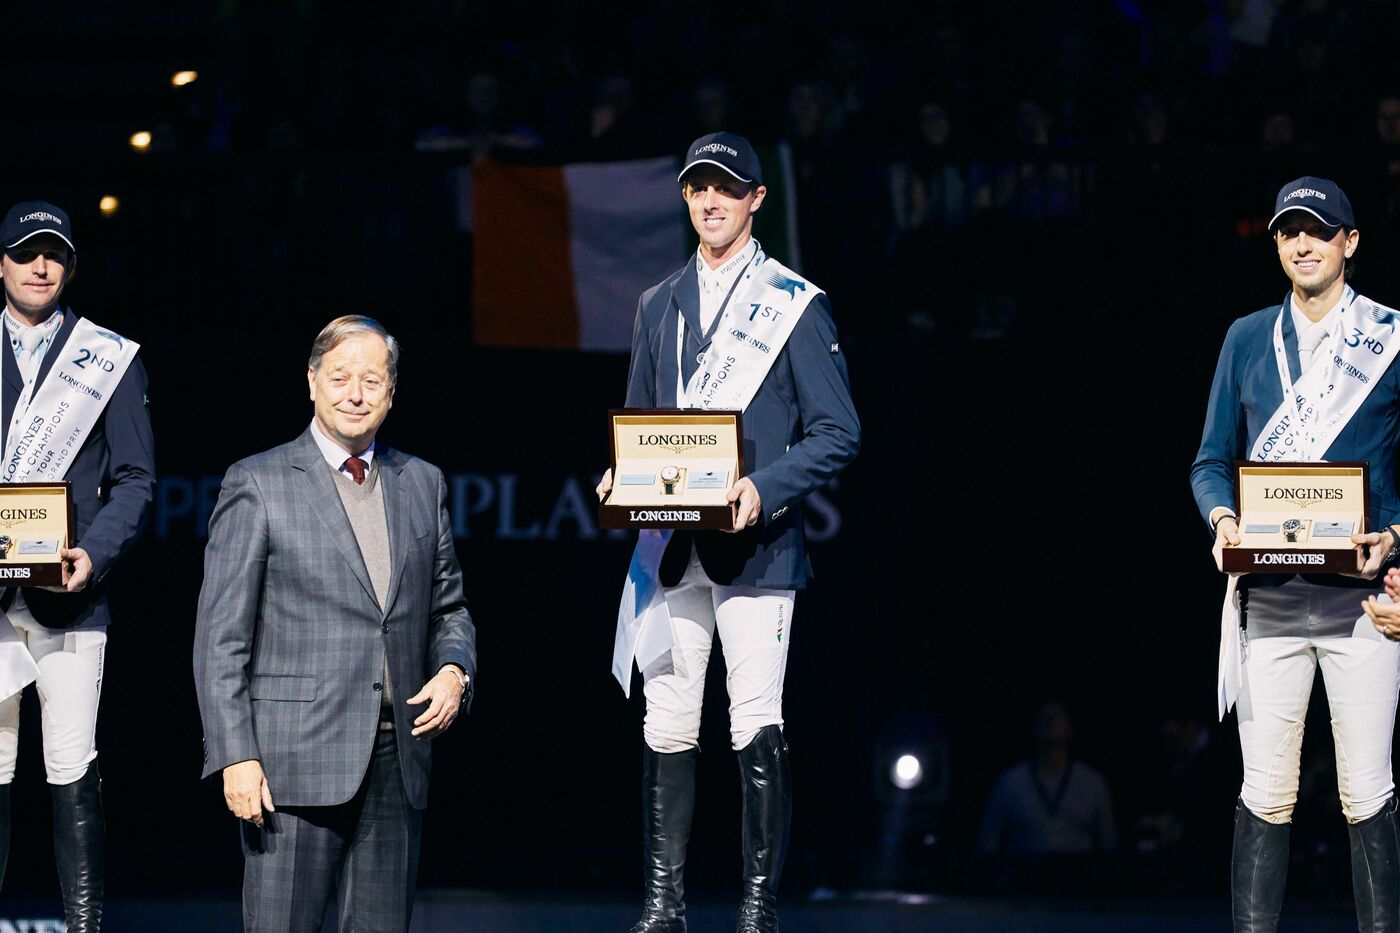 Longines Show Jumping Event: Mind-blowing victory of Ben Maher who becomes the champion of the Longines Global Champions Tour Super Grand Prix 5